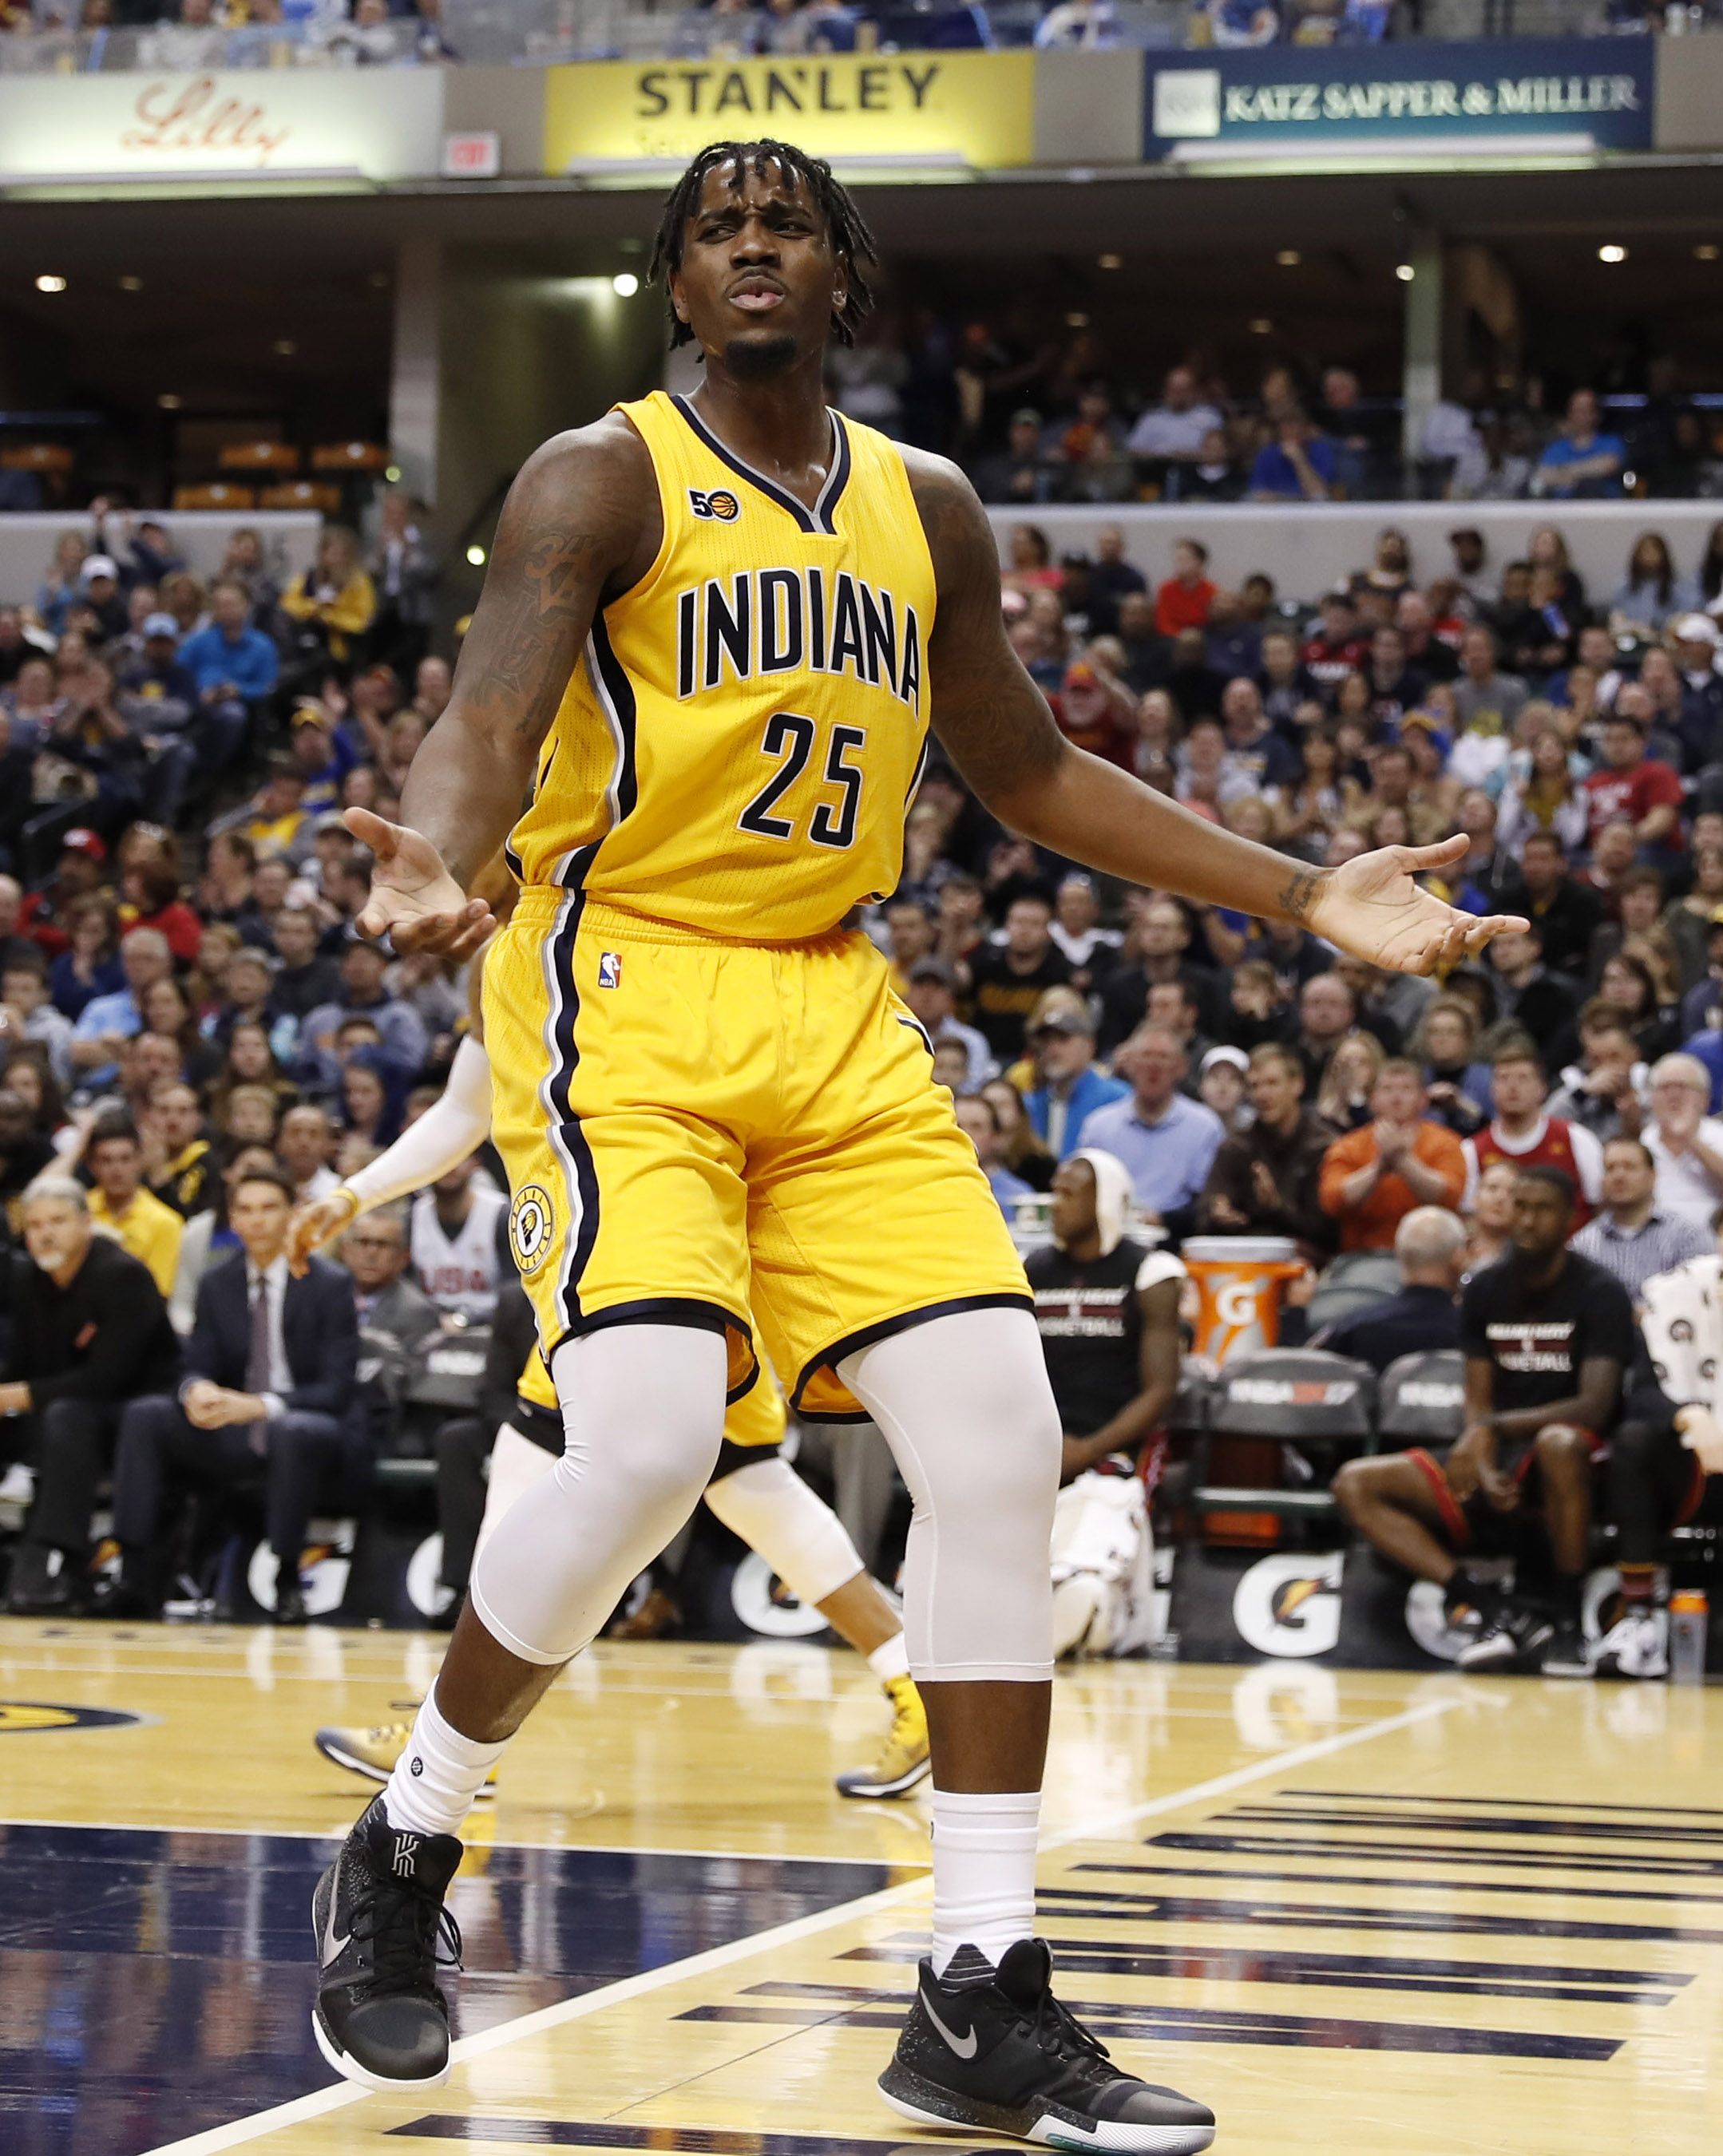 9938616-nba-miami-heat-at-indiana-pacers